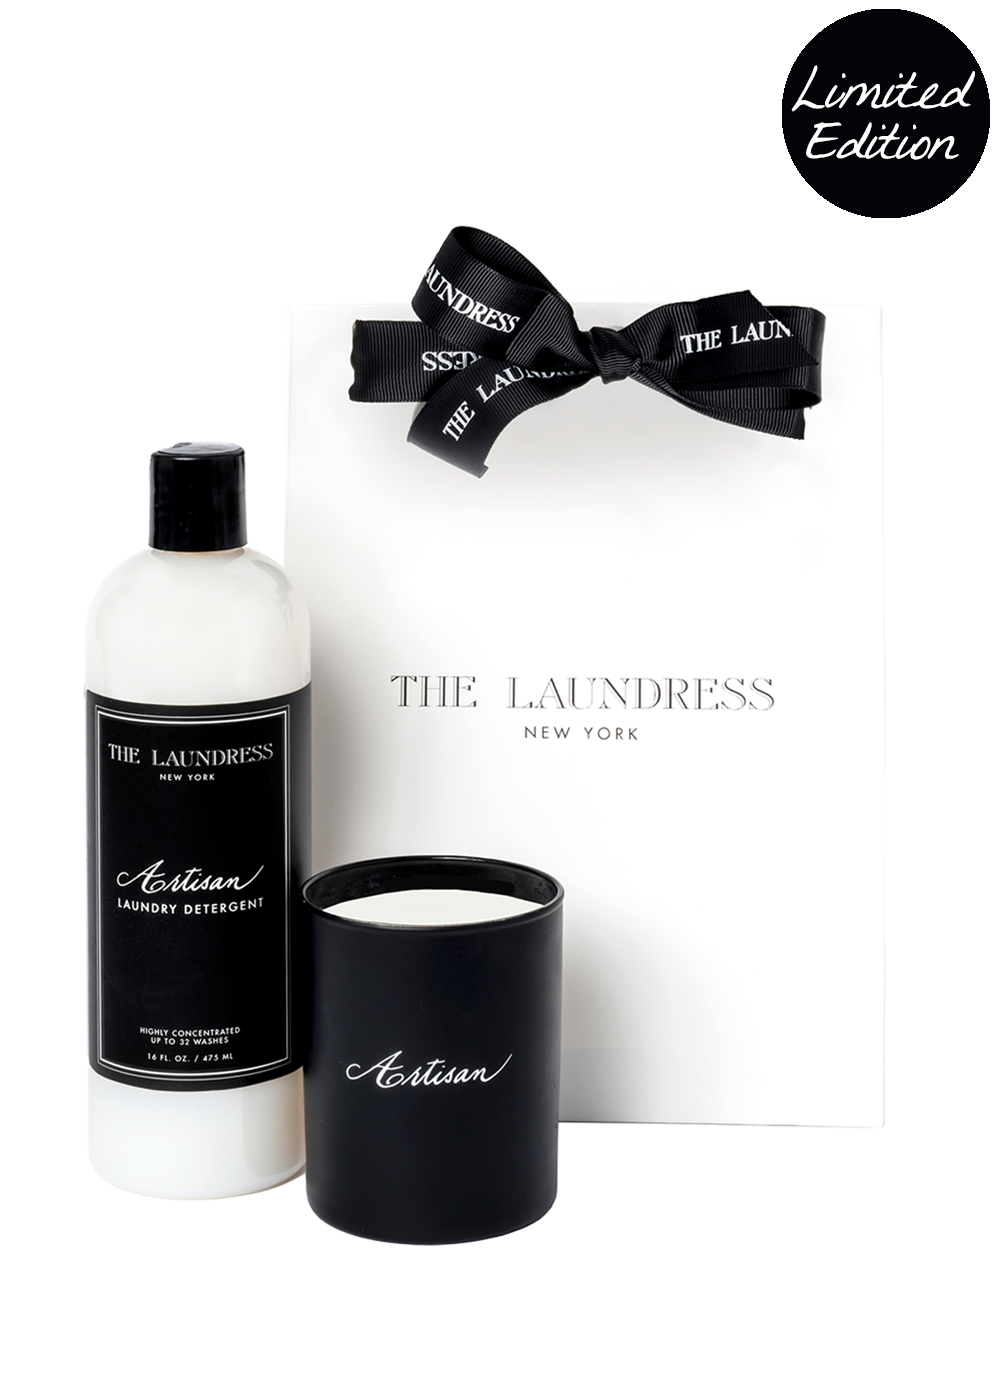 Artisan Laundry Detergent & Candle Gift Set by the Laundress